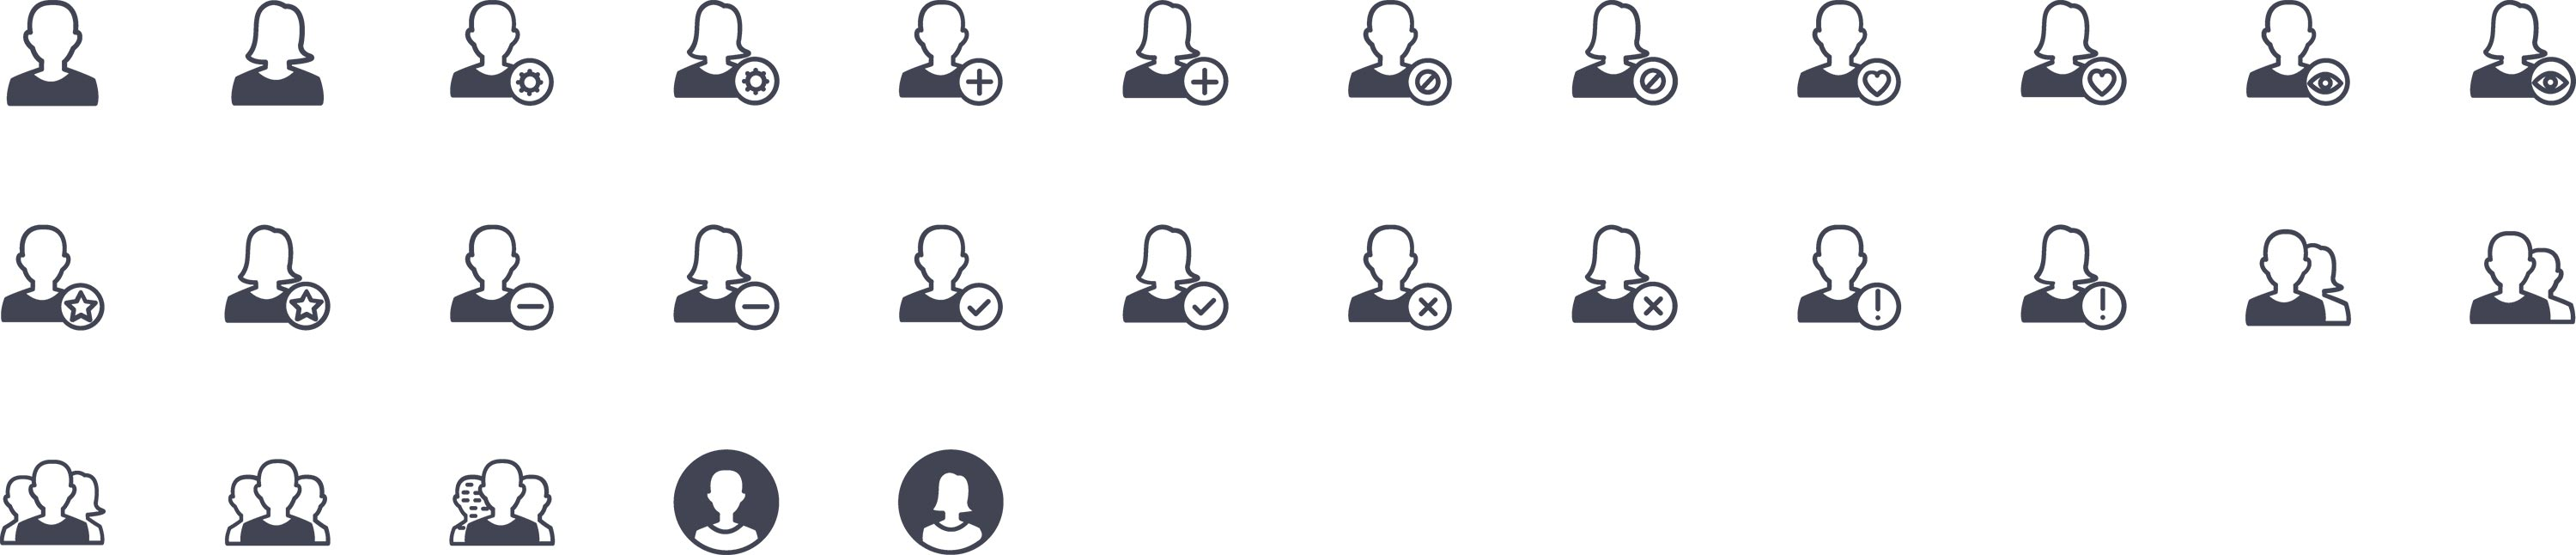 Users Glyph Icons